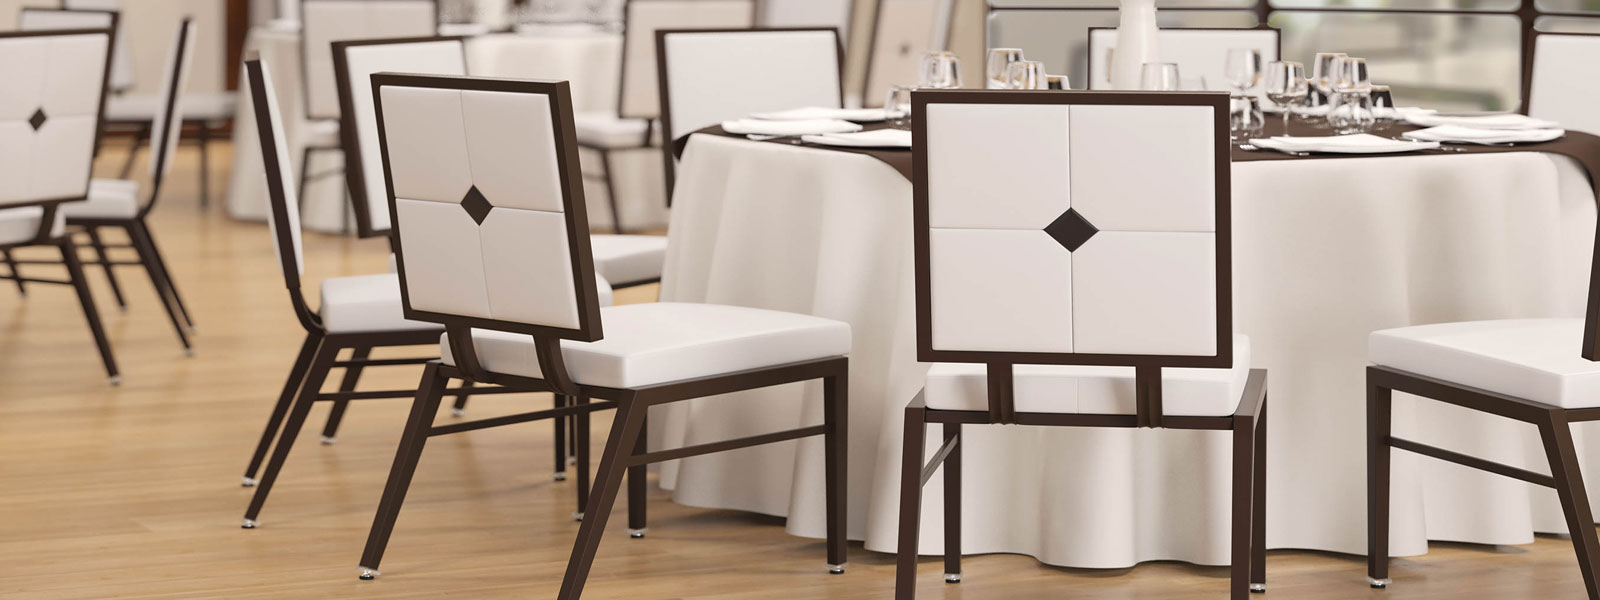 Hotel Furniture Restaurant Chair Banquet Furniture Manufacturers